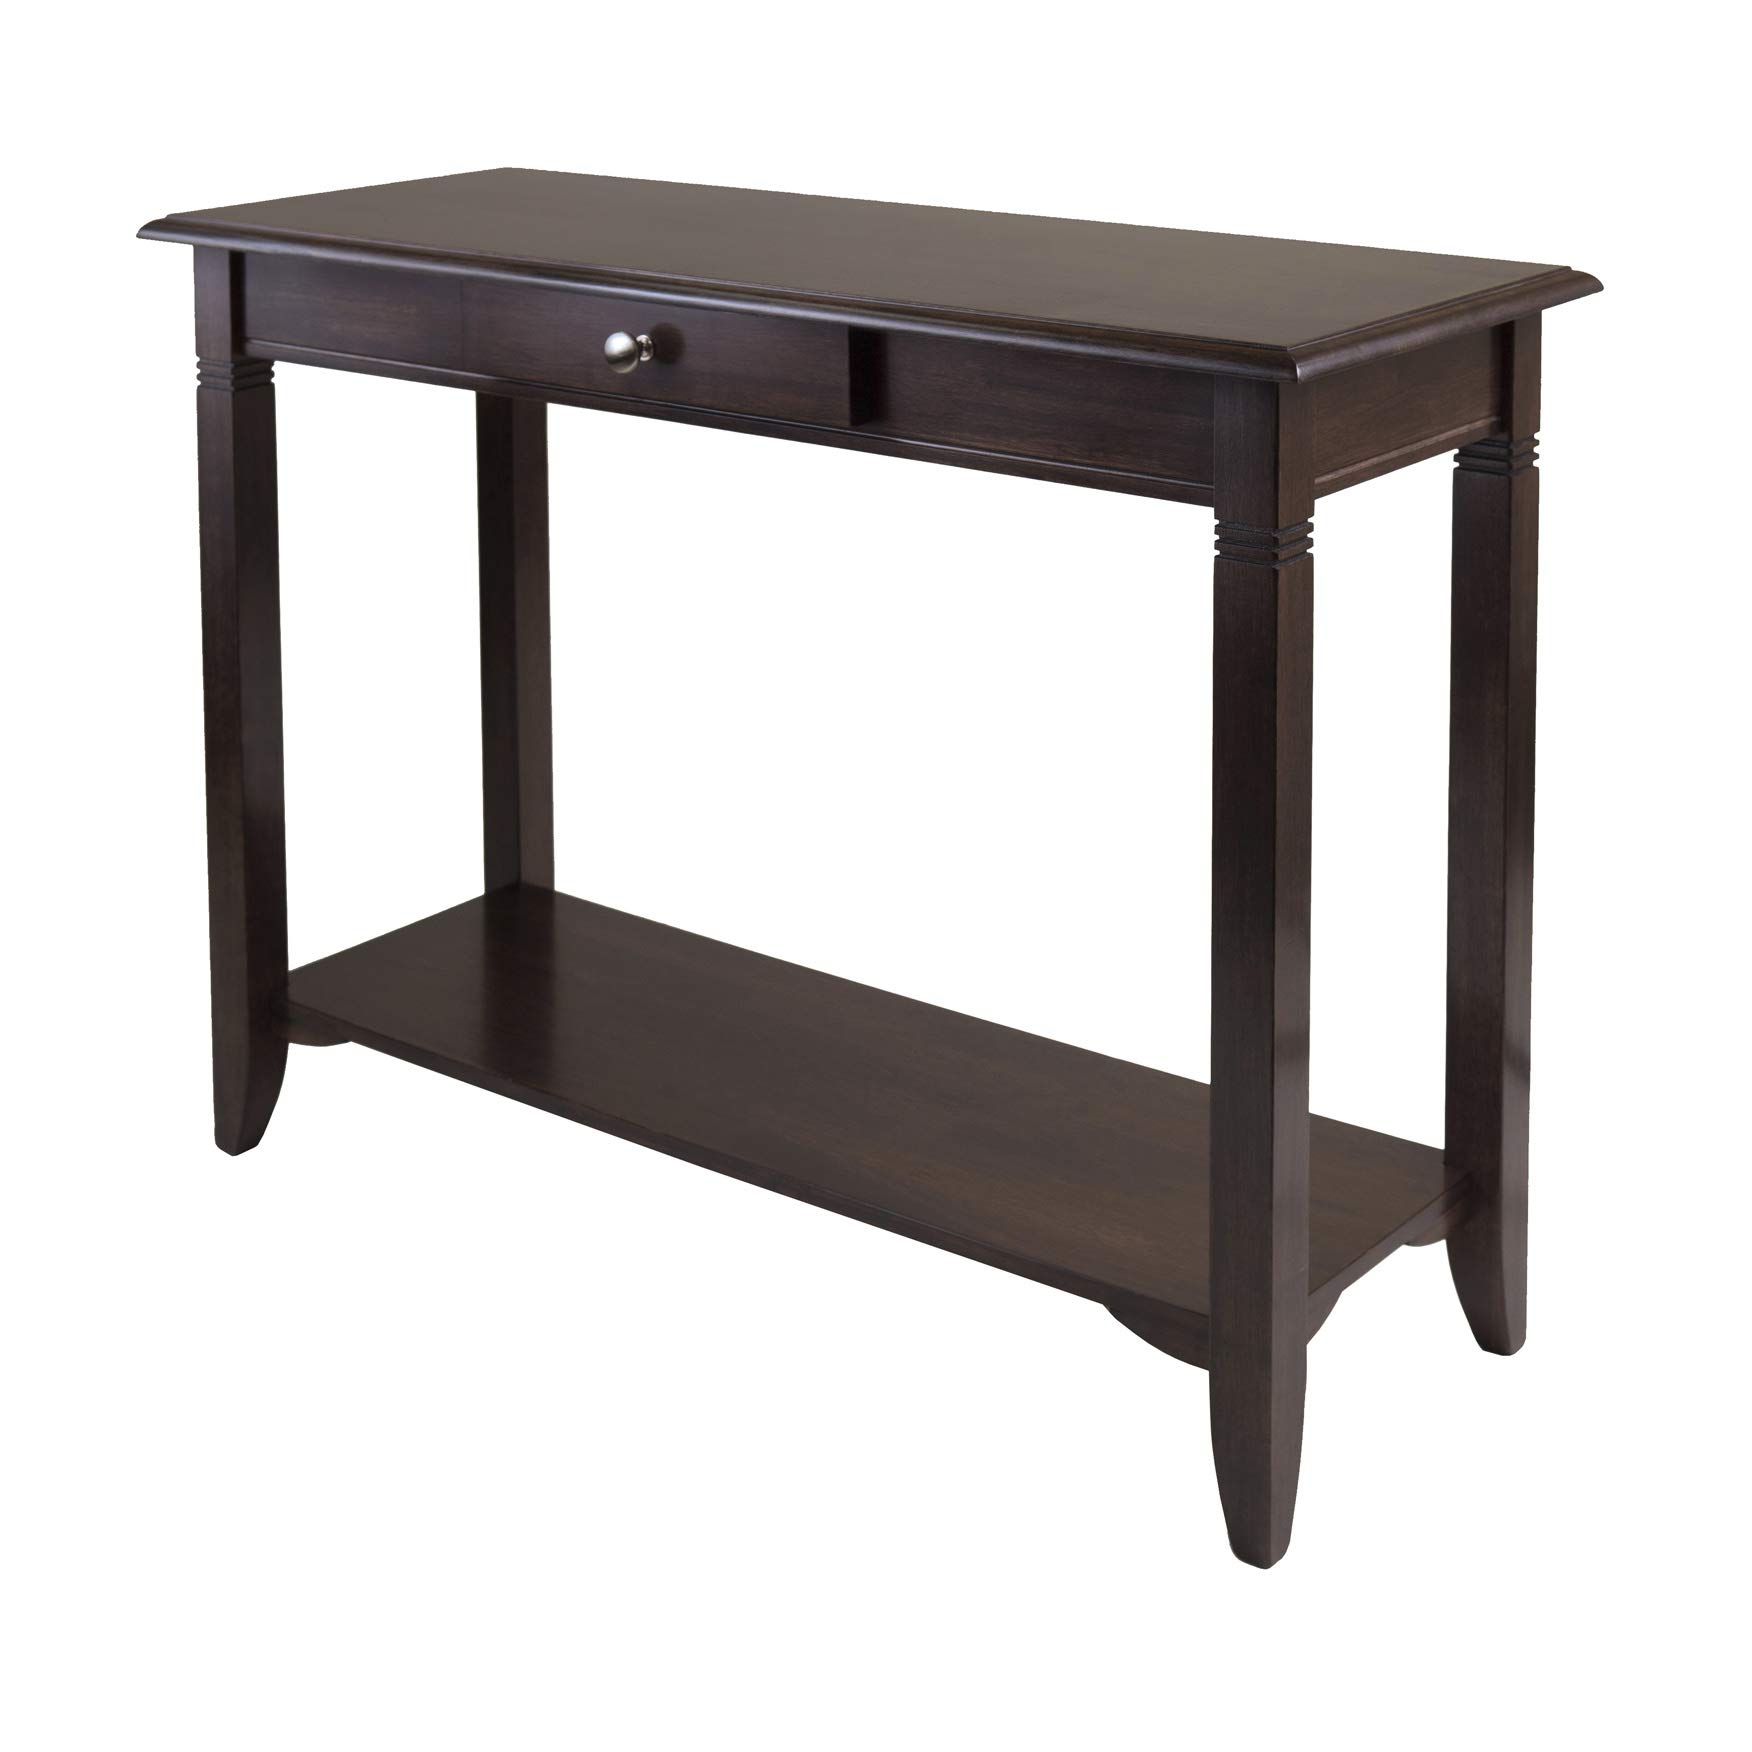 Winsome 40640 Nolan Occasional Table, Cappuccino by Winsome